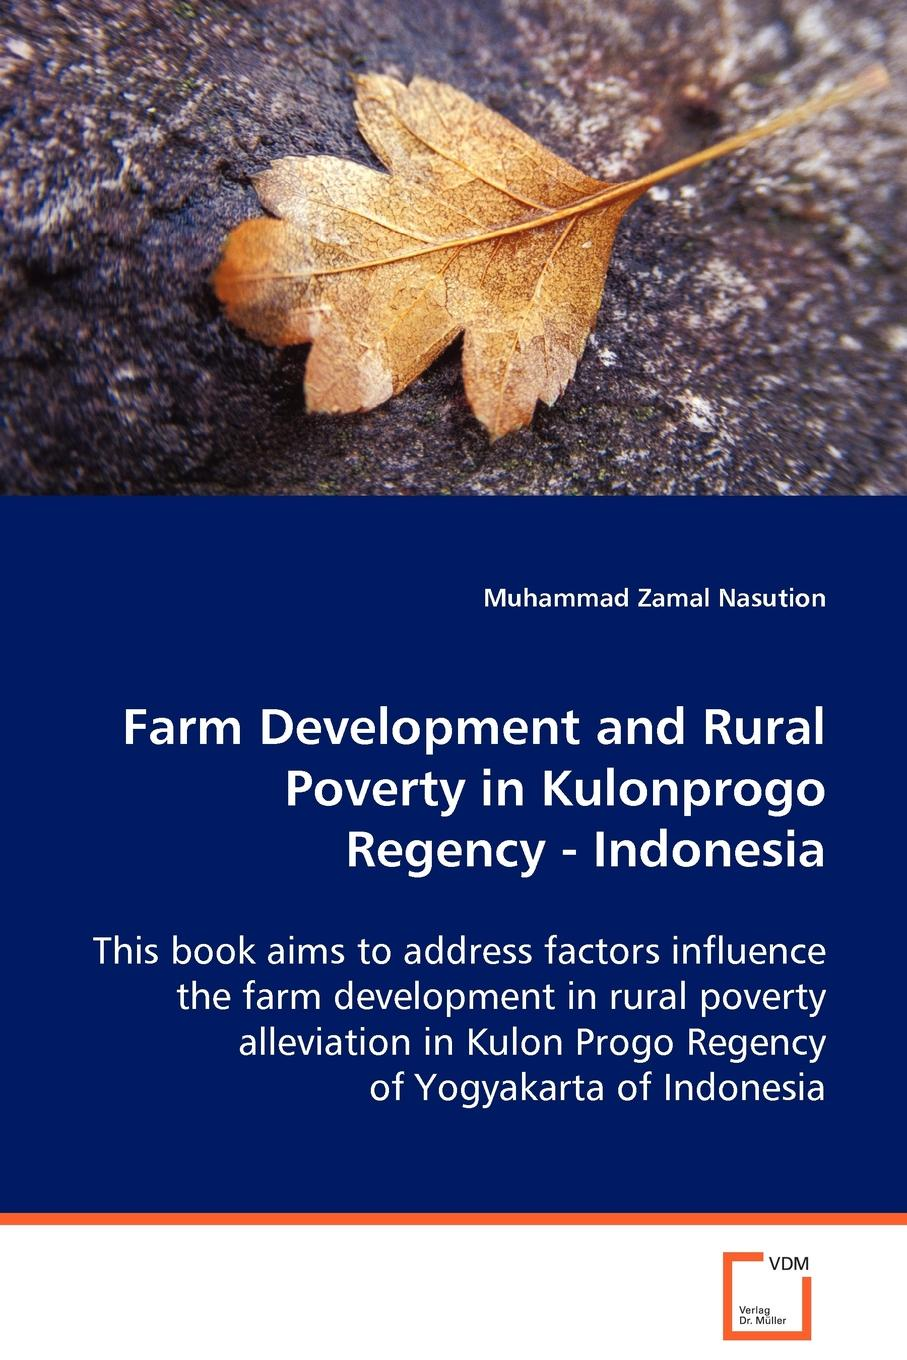 Muhammad Zamal Nasution Farm Development and Rural Poverty in Kulonprogo Regency, Indonesia development of small scale food industry cluster in indonesia